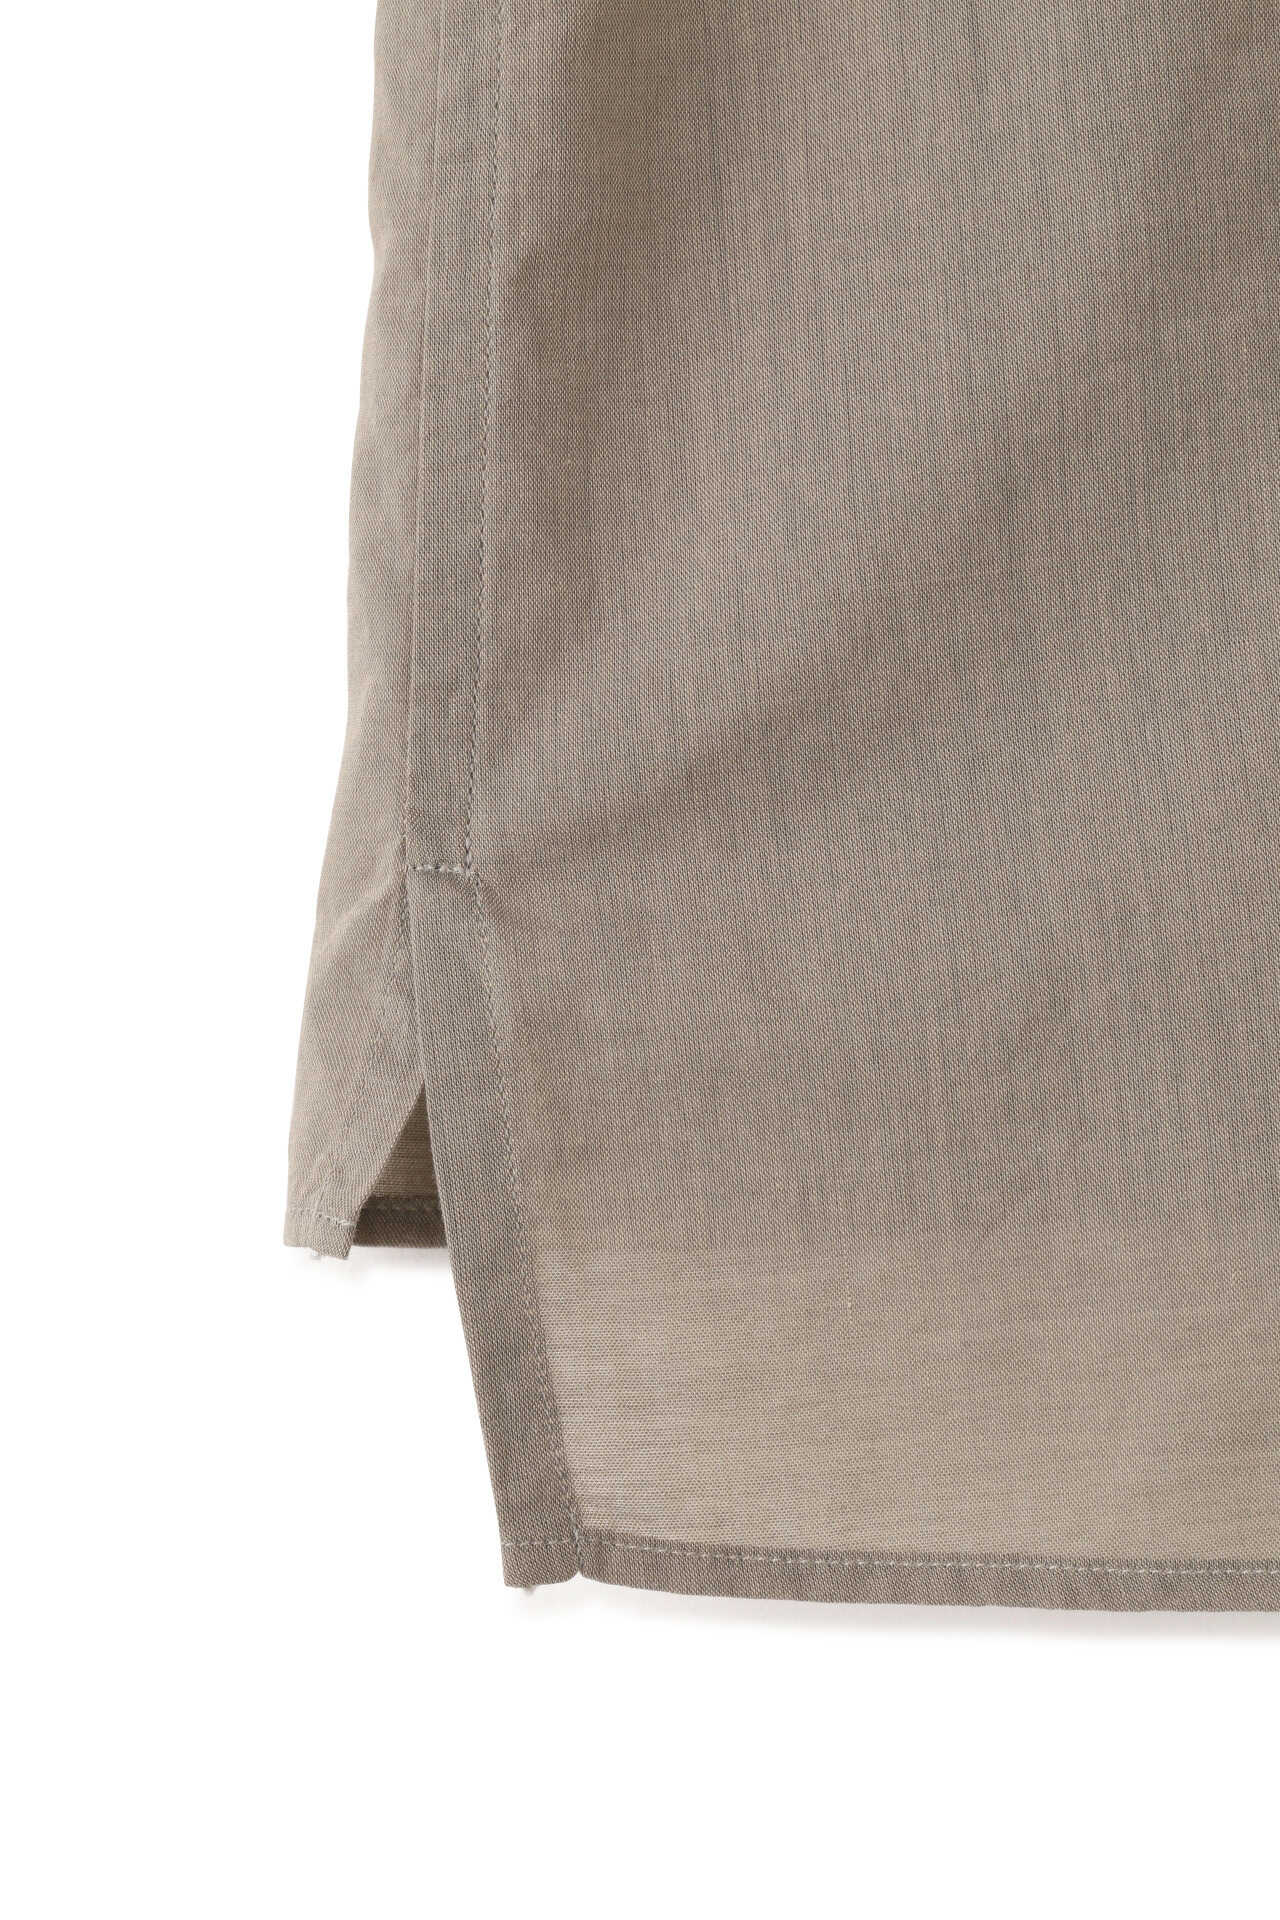 SOFT WASHED COTTON6